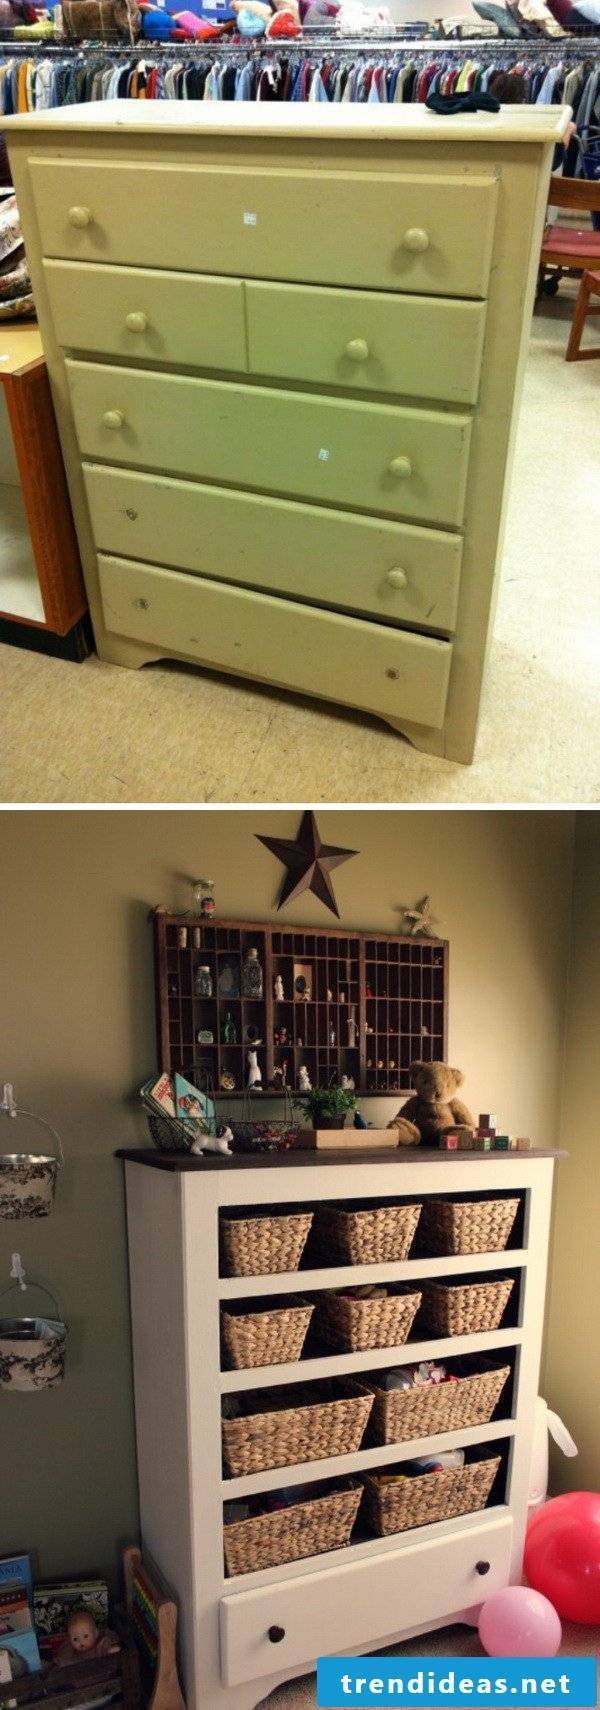 Pimp Hacks: Do It Yourself Ideas for DIY Cabinet